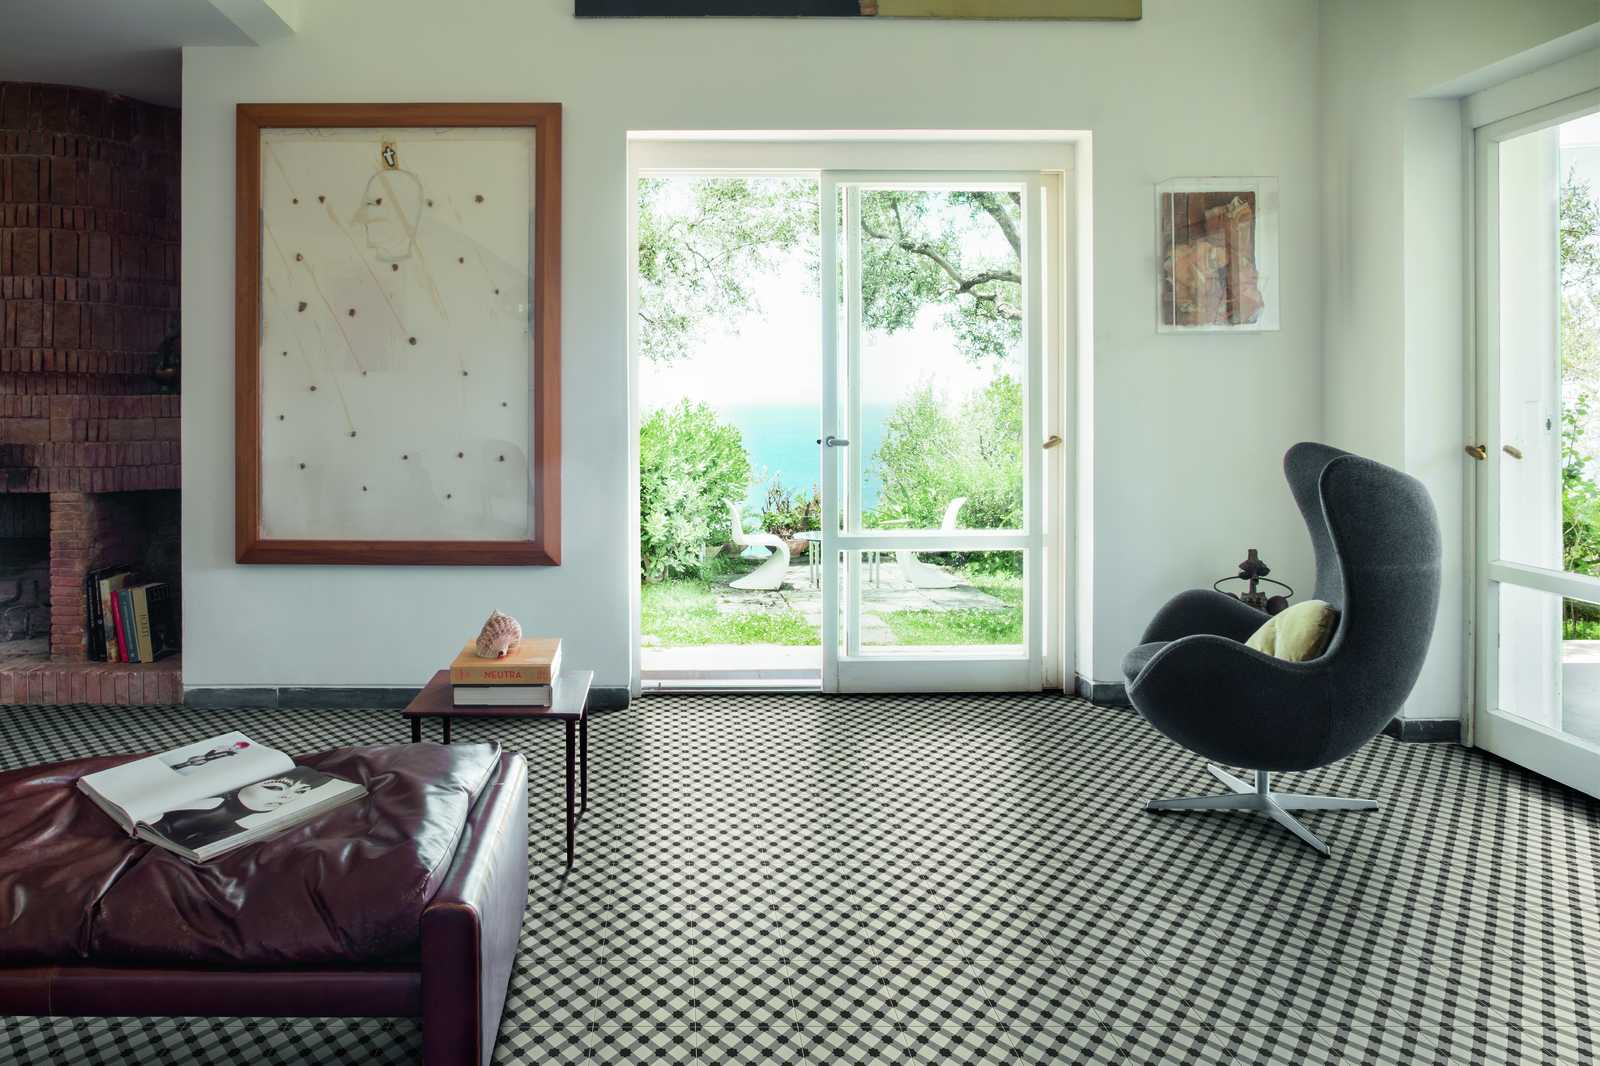 D_Segni collection Stoneware Handmade Cement Tiles  Marazzi